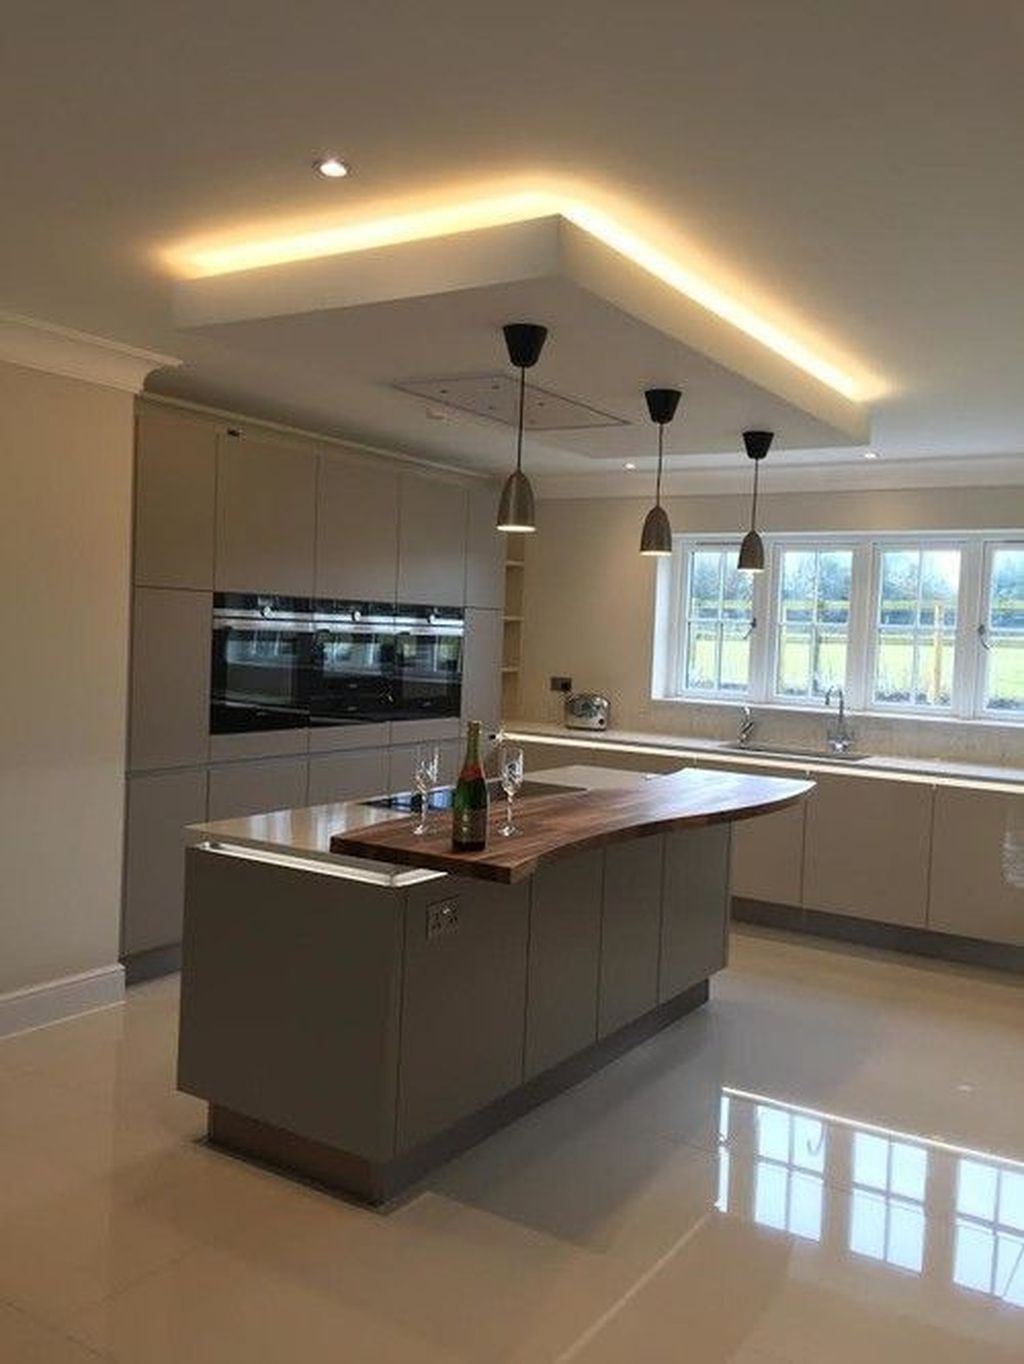 40 Affordable Ceiling Design Ideas With Decorative Lamp Kitchen